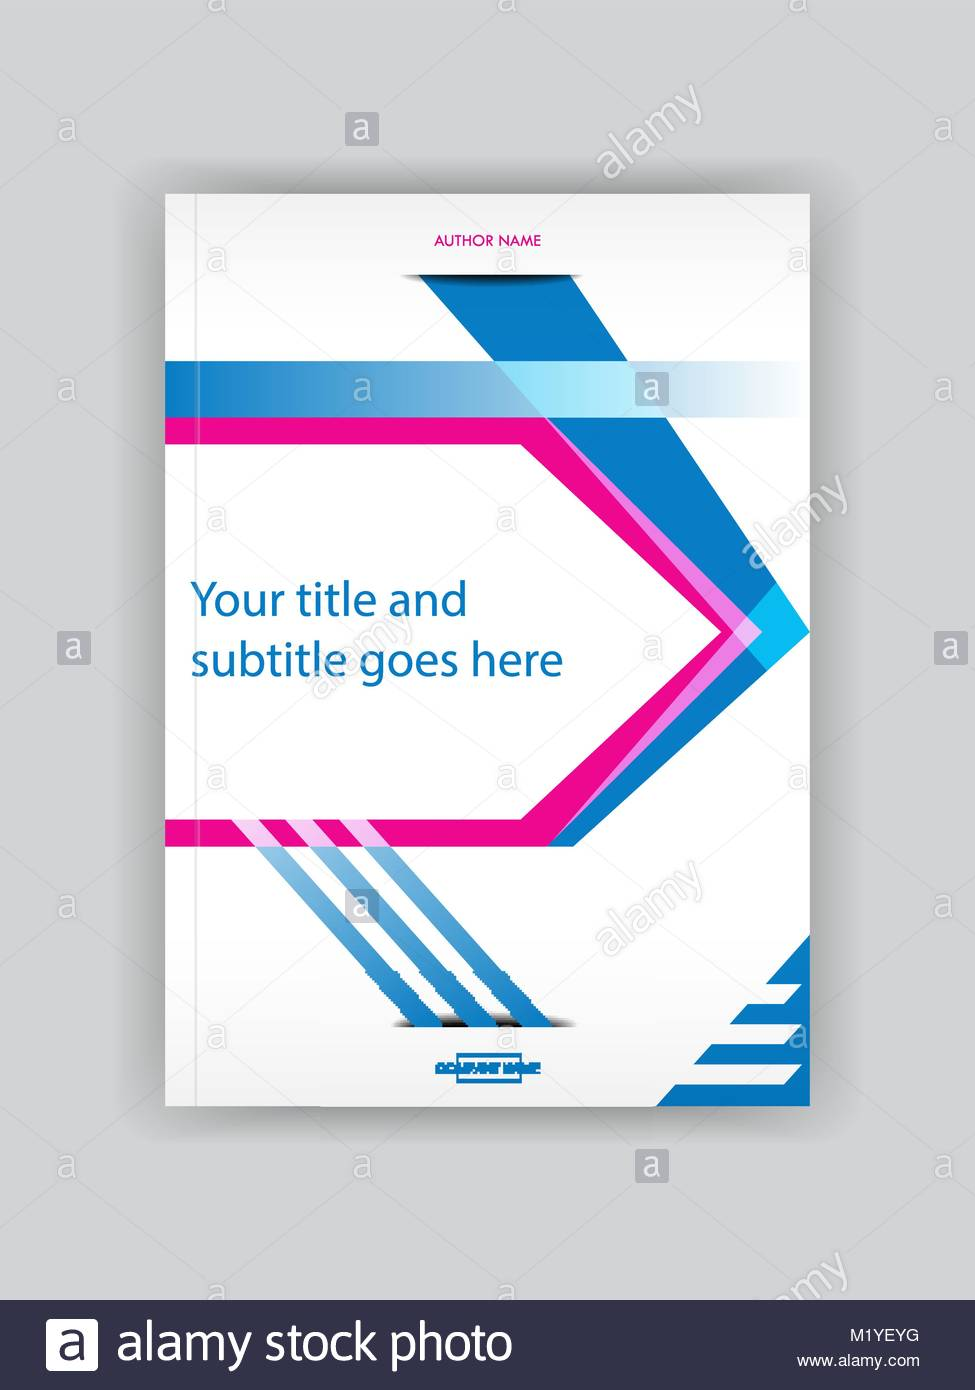 graphic modern cover design booklet template book magazine flyer